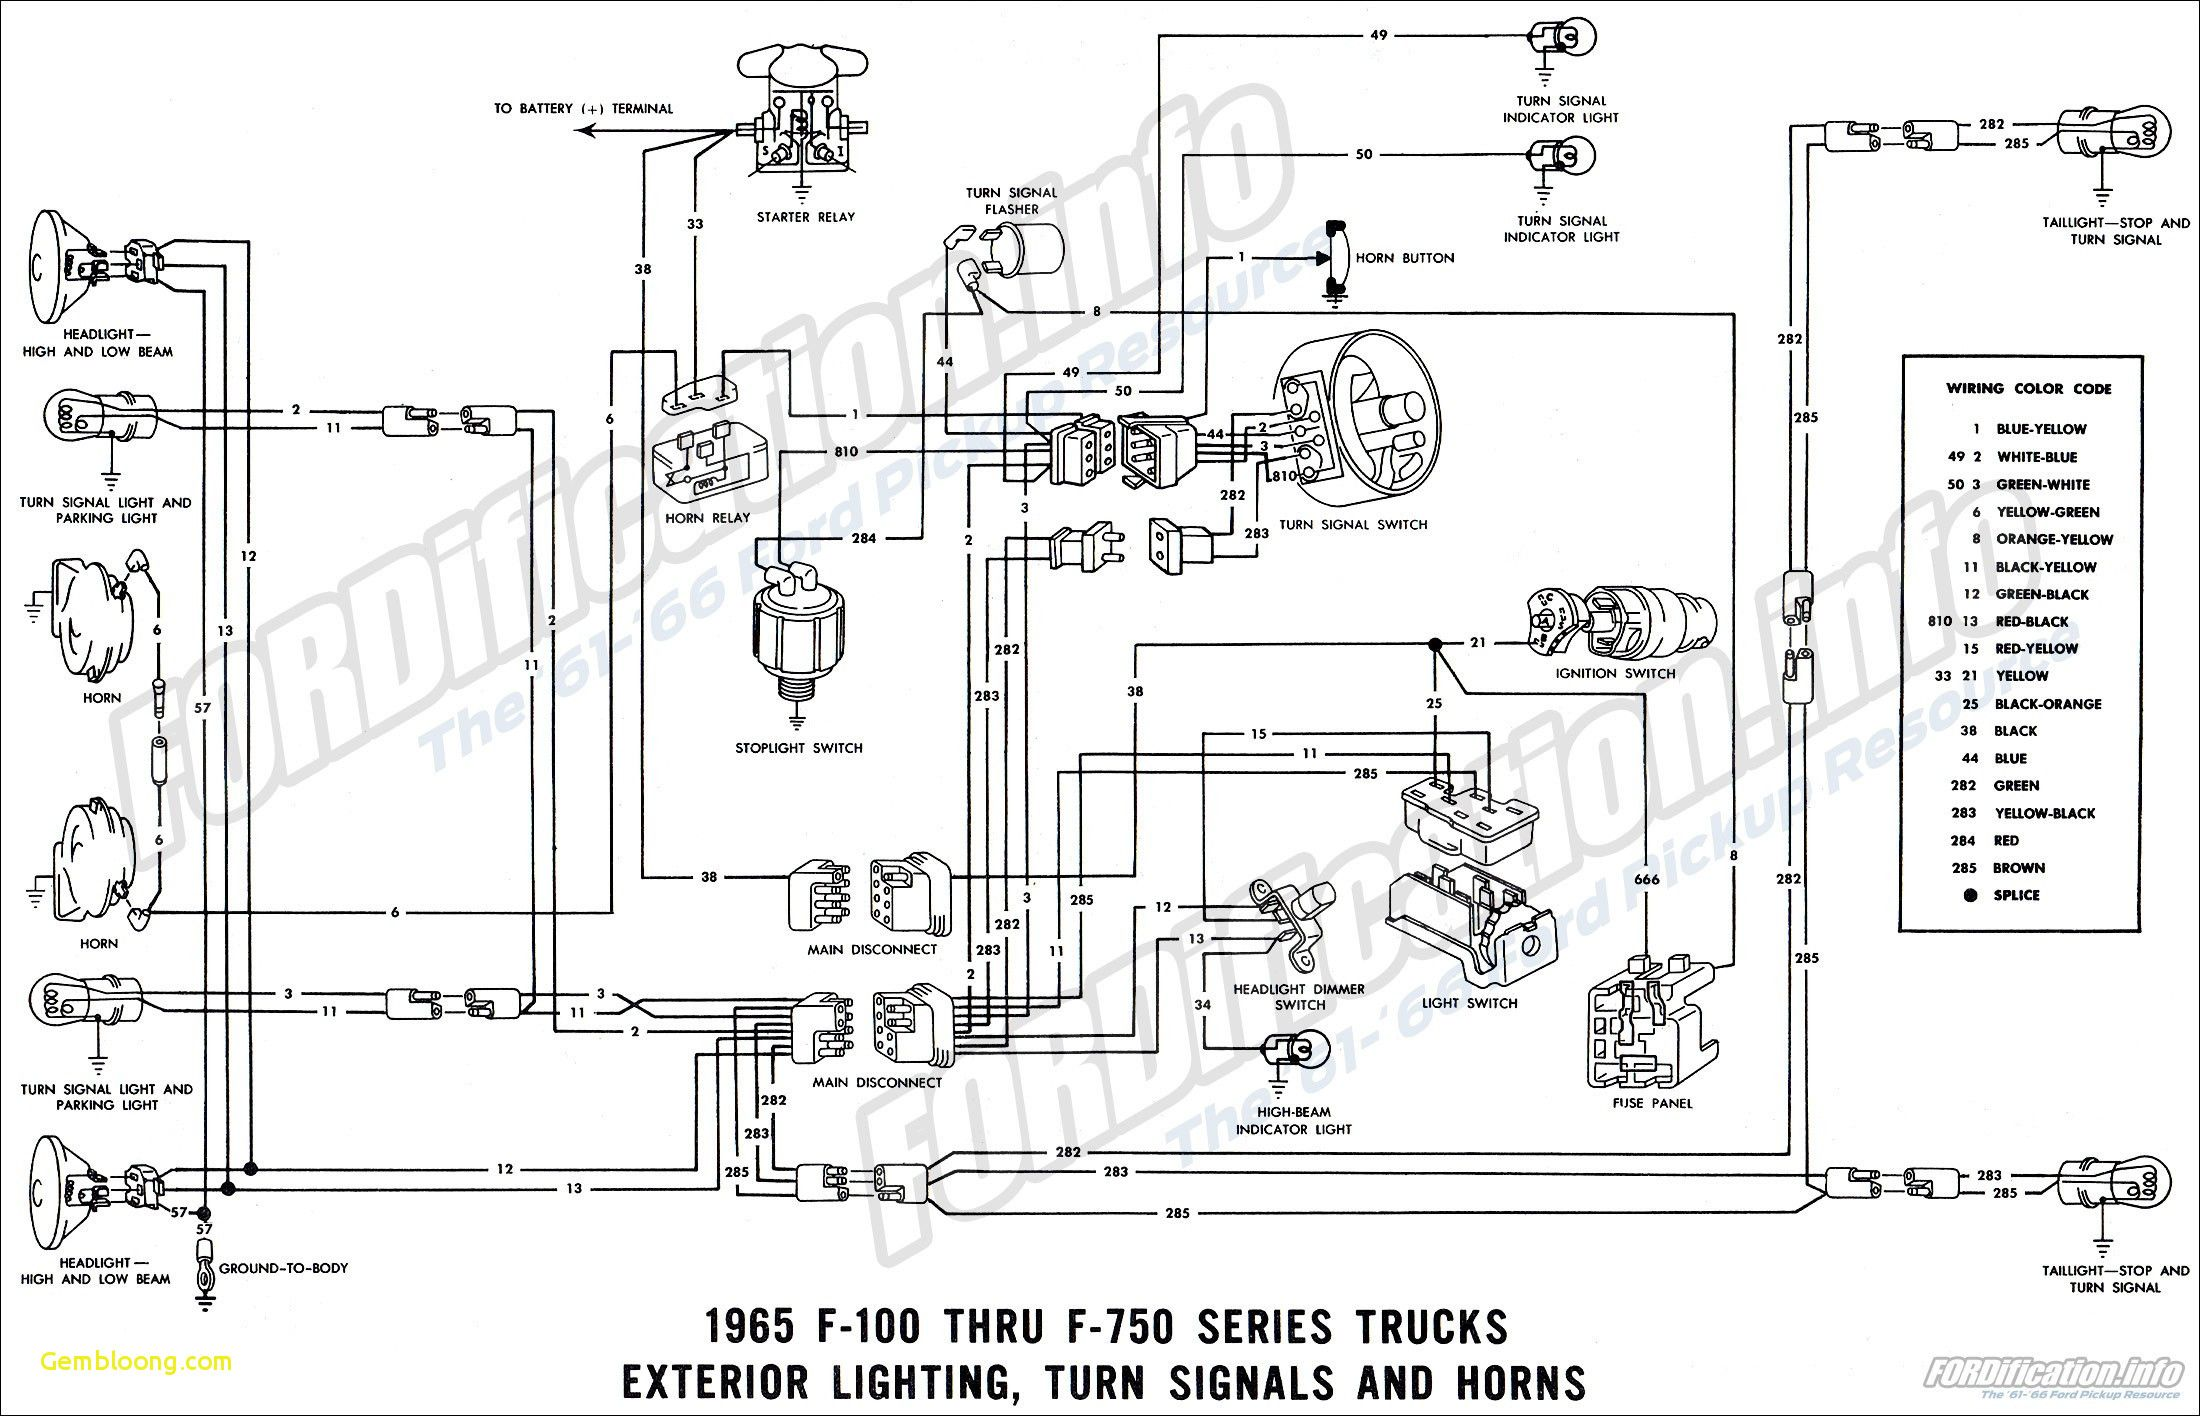 [SCHEMATICS_48IU]  21 Ford Harness Wiring Diagram - bookingritzcarlton.info in 2020 | Diagram,  Alternator, Ford | 1966 Ford Alternator Diagram Wiring Schematic |  | Pinterest